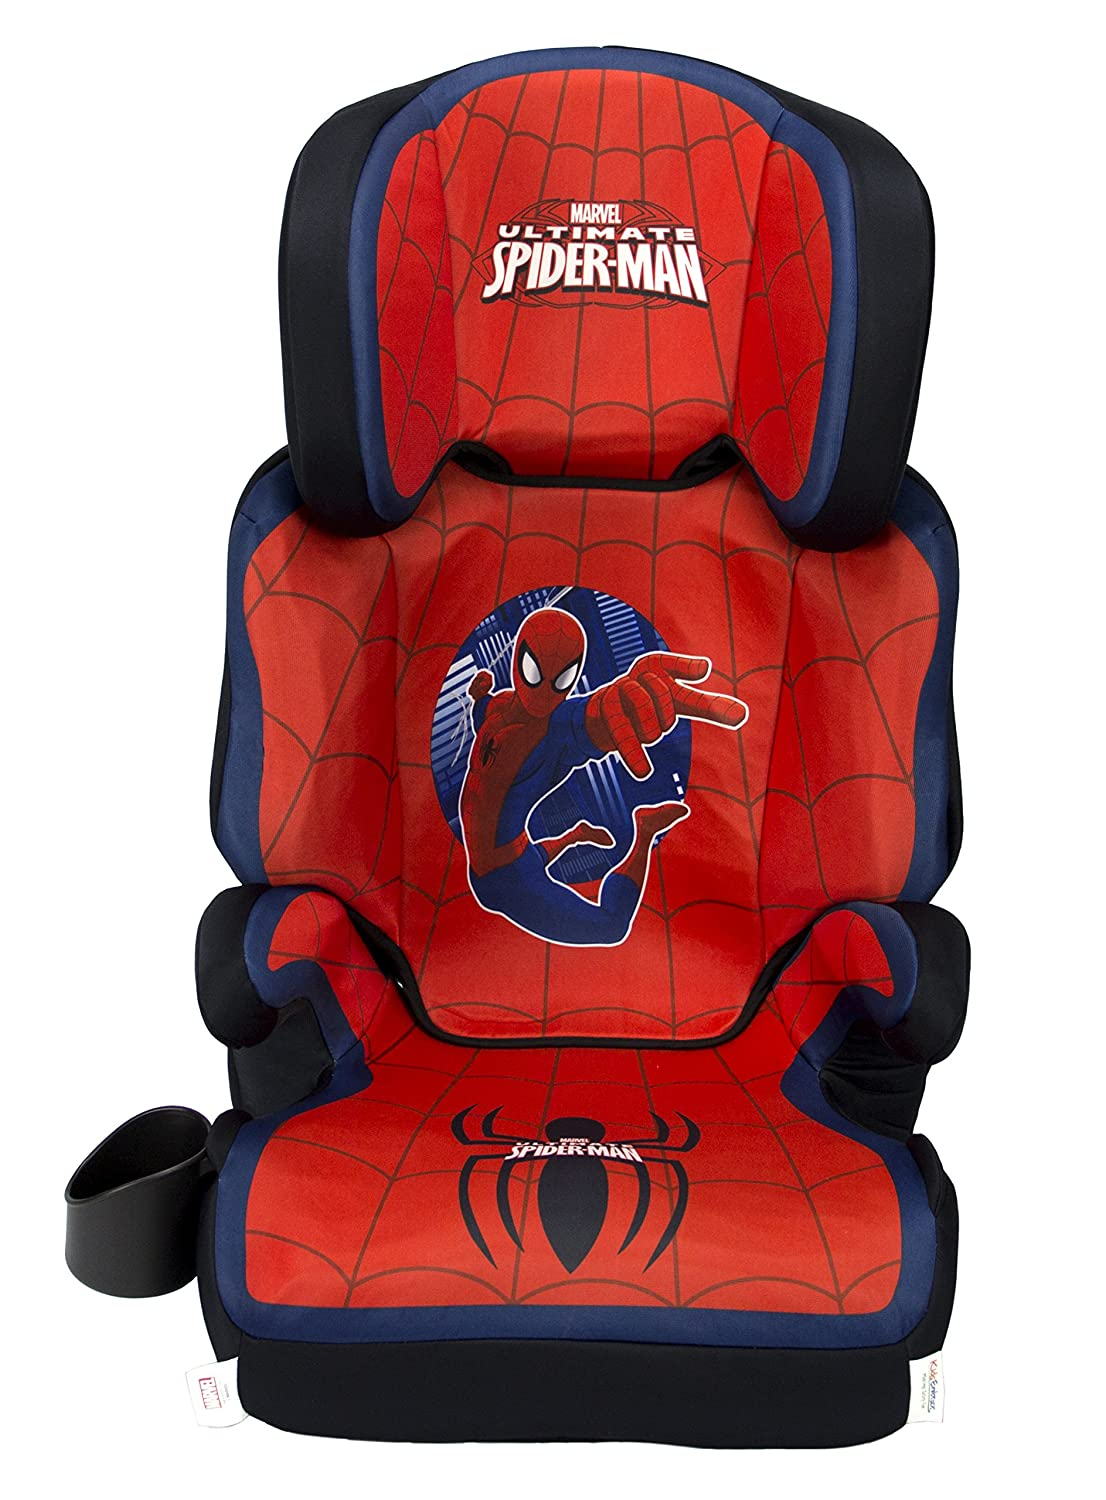 KidsEmbrace High-Back Booster Car Seat, Marvel Spider-Man 4601SPD